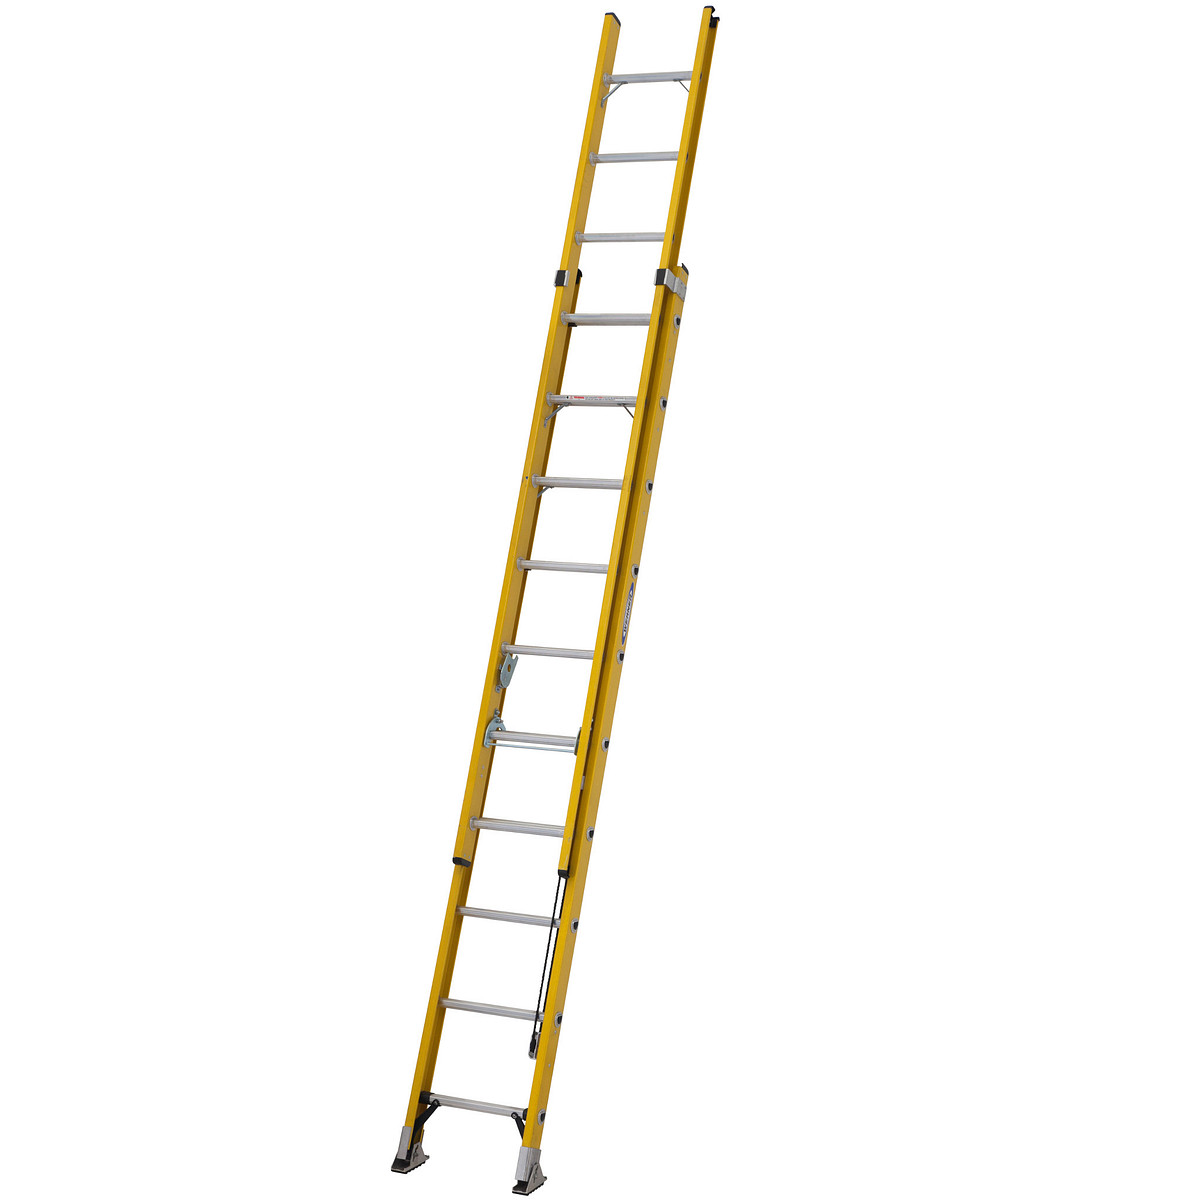 Double 3m GRP Extension Ladder